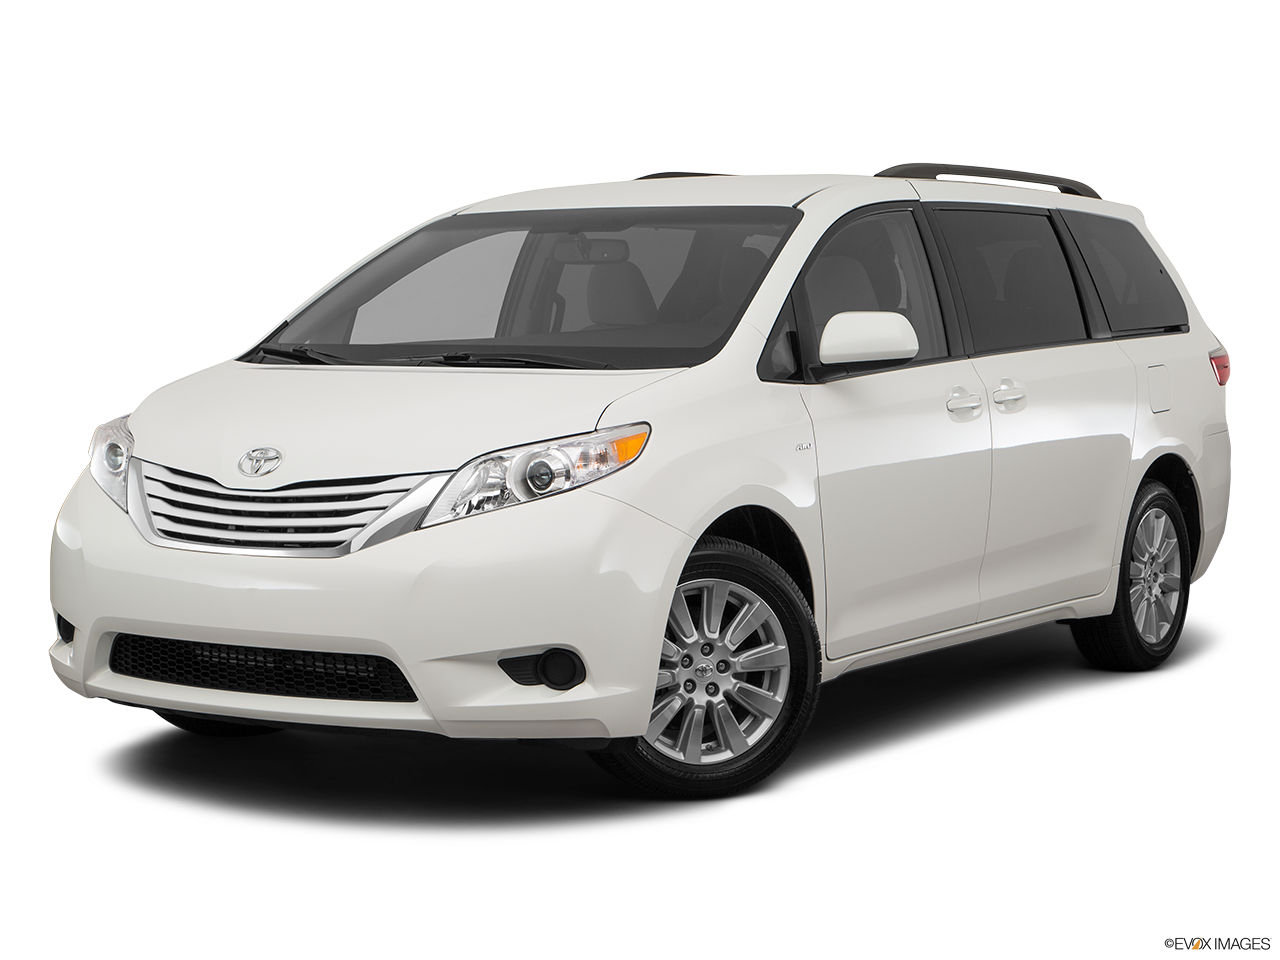 Toyota Dealer Fresno Madera Toyota | 2017 Toyota Sienna for sale near Fresno